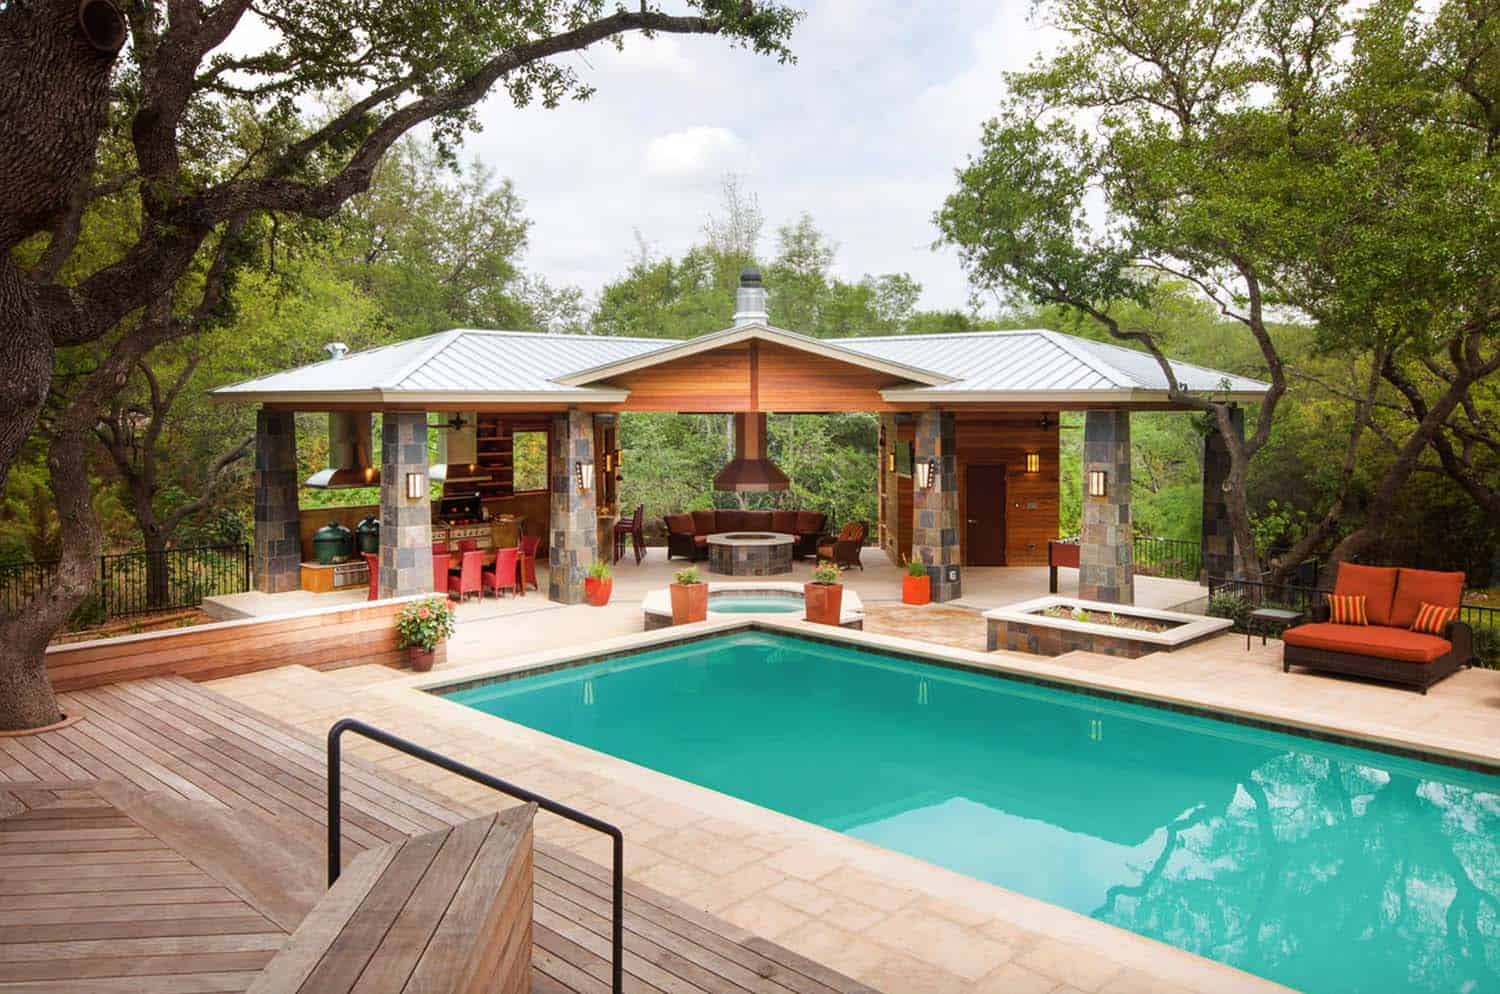 An Outdoor Living Paradise In Austin, Texas Features An Ipe Wood Deck That  Steps Down To The Pool, Which Is Surrounded By Concrete Tile.